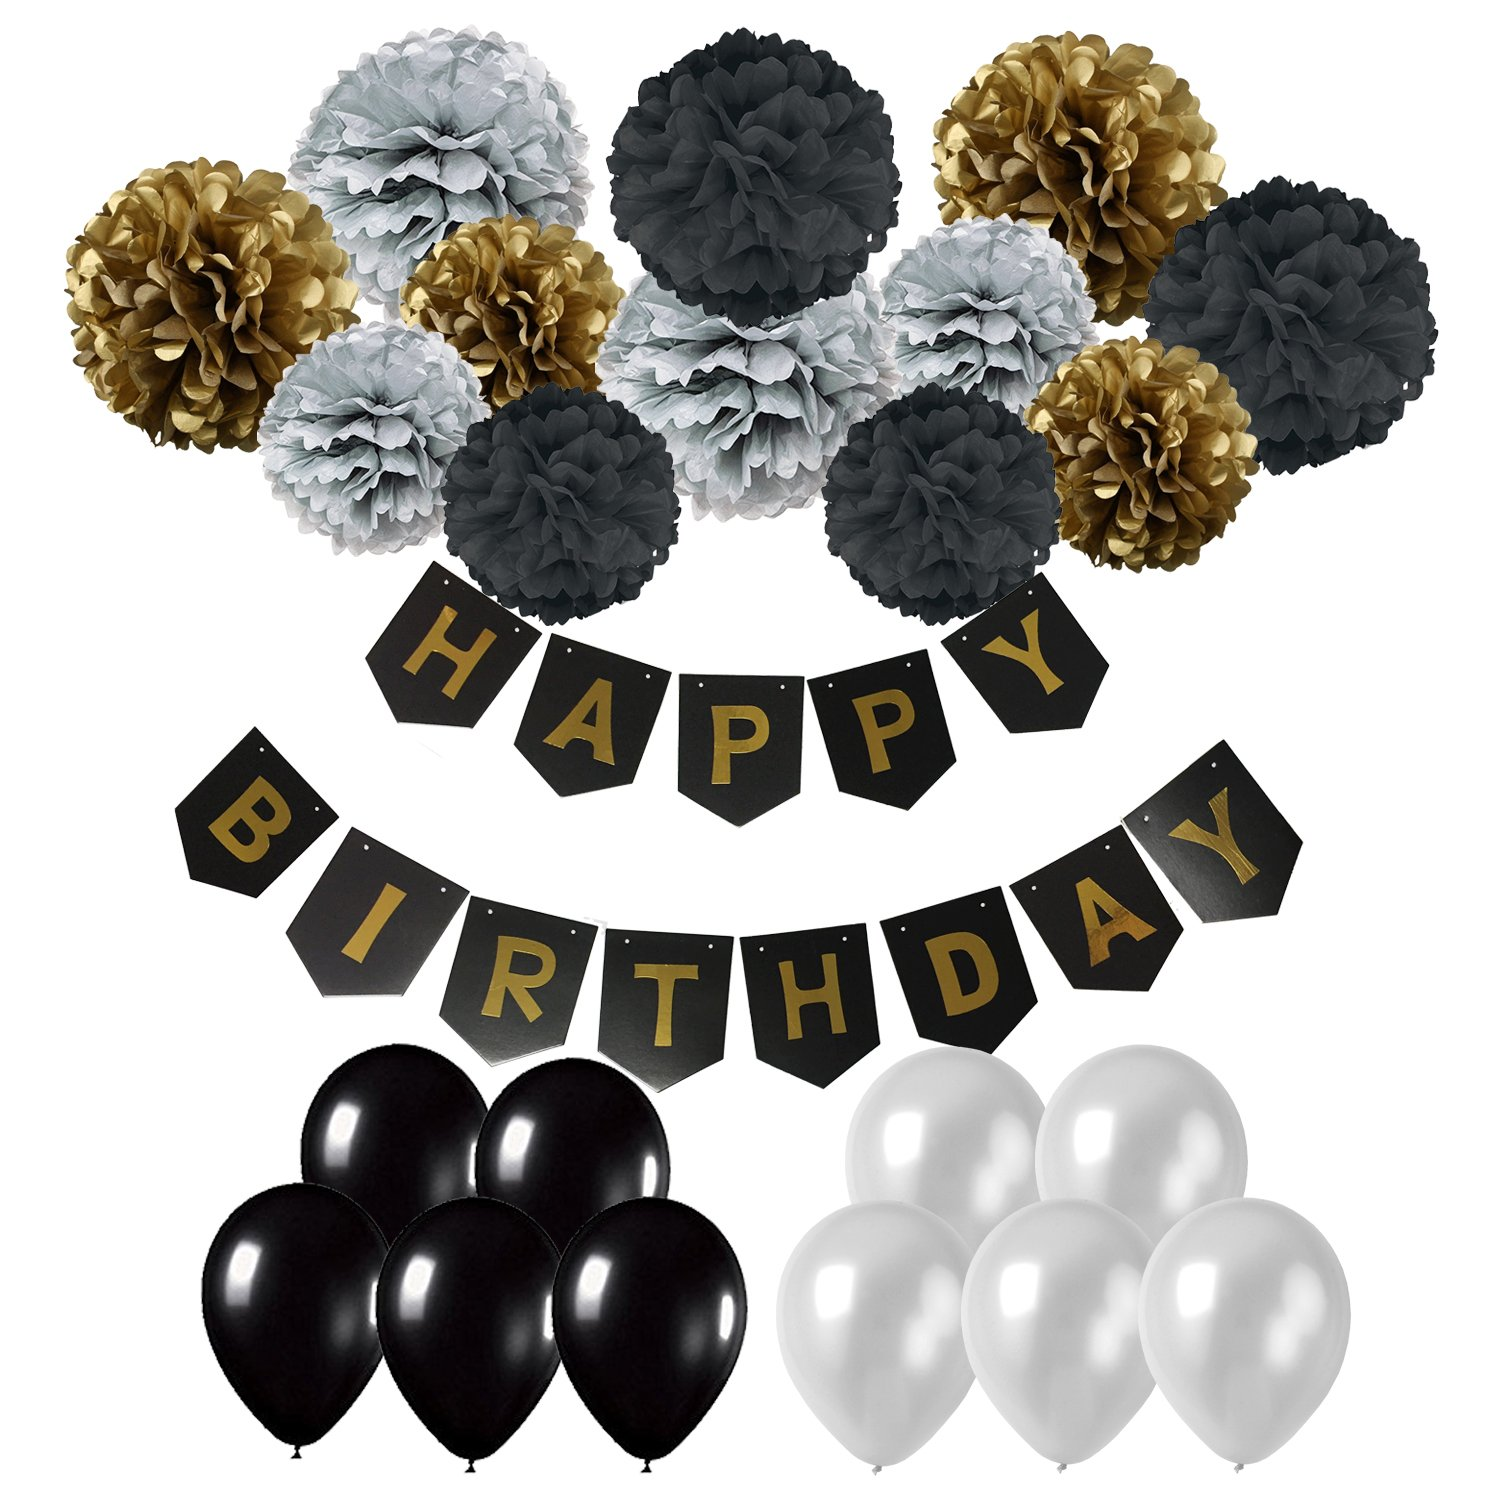 Cocodeko Happy Birthday Banner, Birthday Bunting Paper Garland with 12pcs Tissue Paper Pom Poms and 20pcs Balloons for Birthday Party Decorations - Black, Gold and Silver by Cocodeko